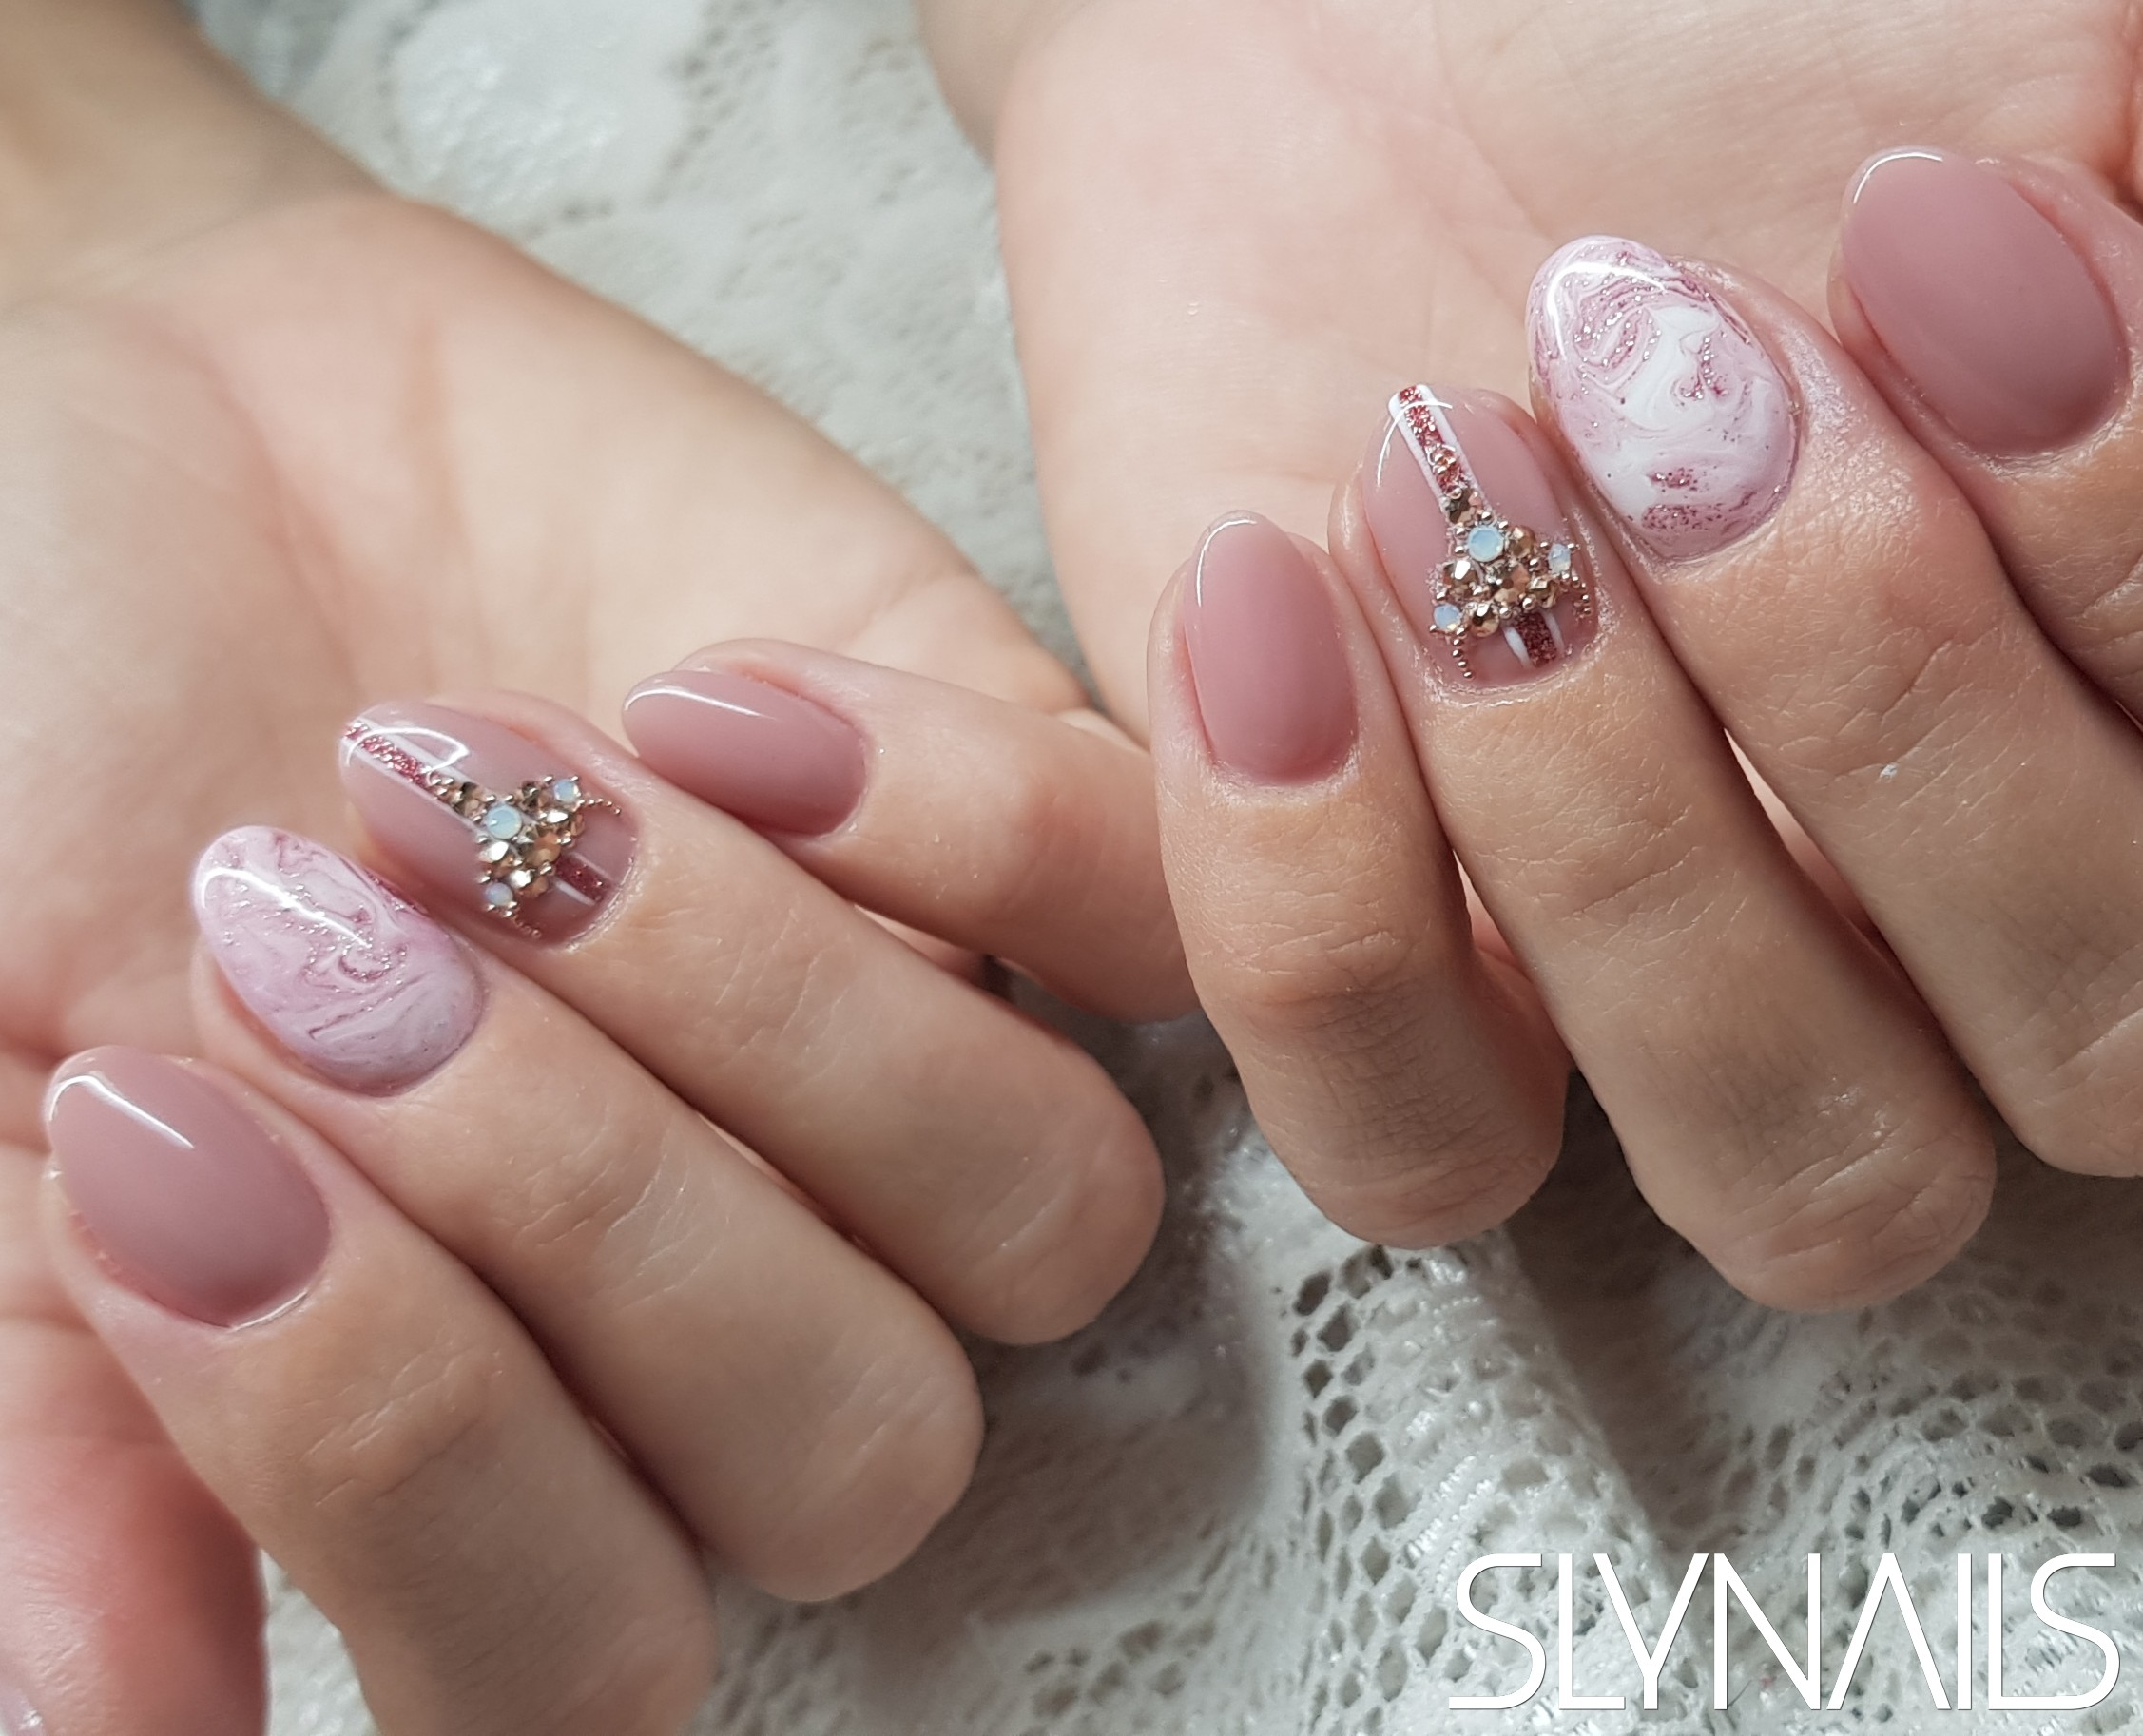 Nail extension, Nude, Almond, Marble effect, Swarovski, Art gel decorations